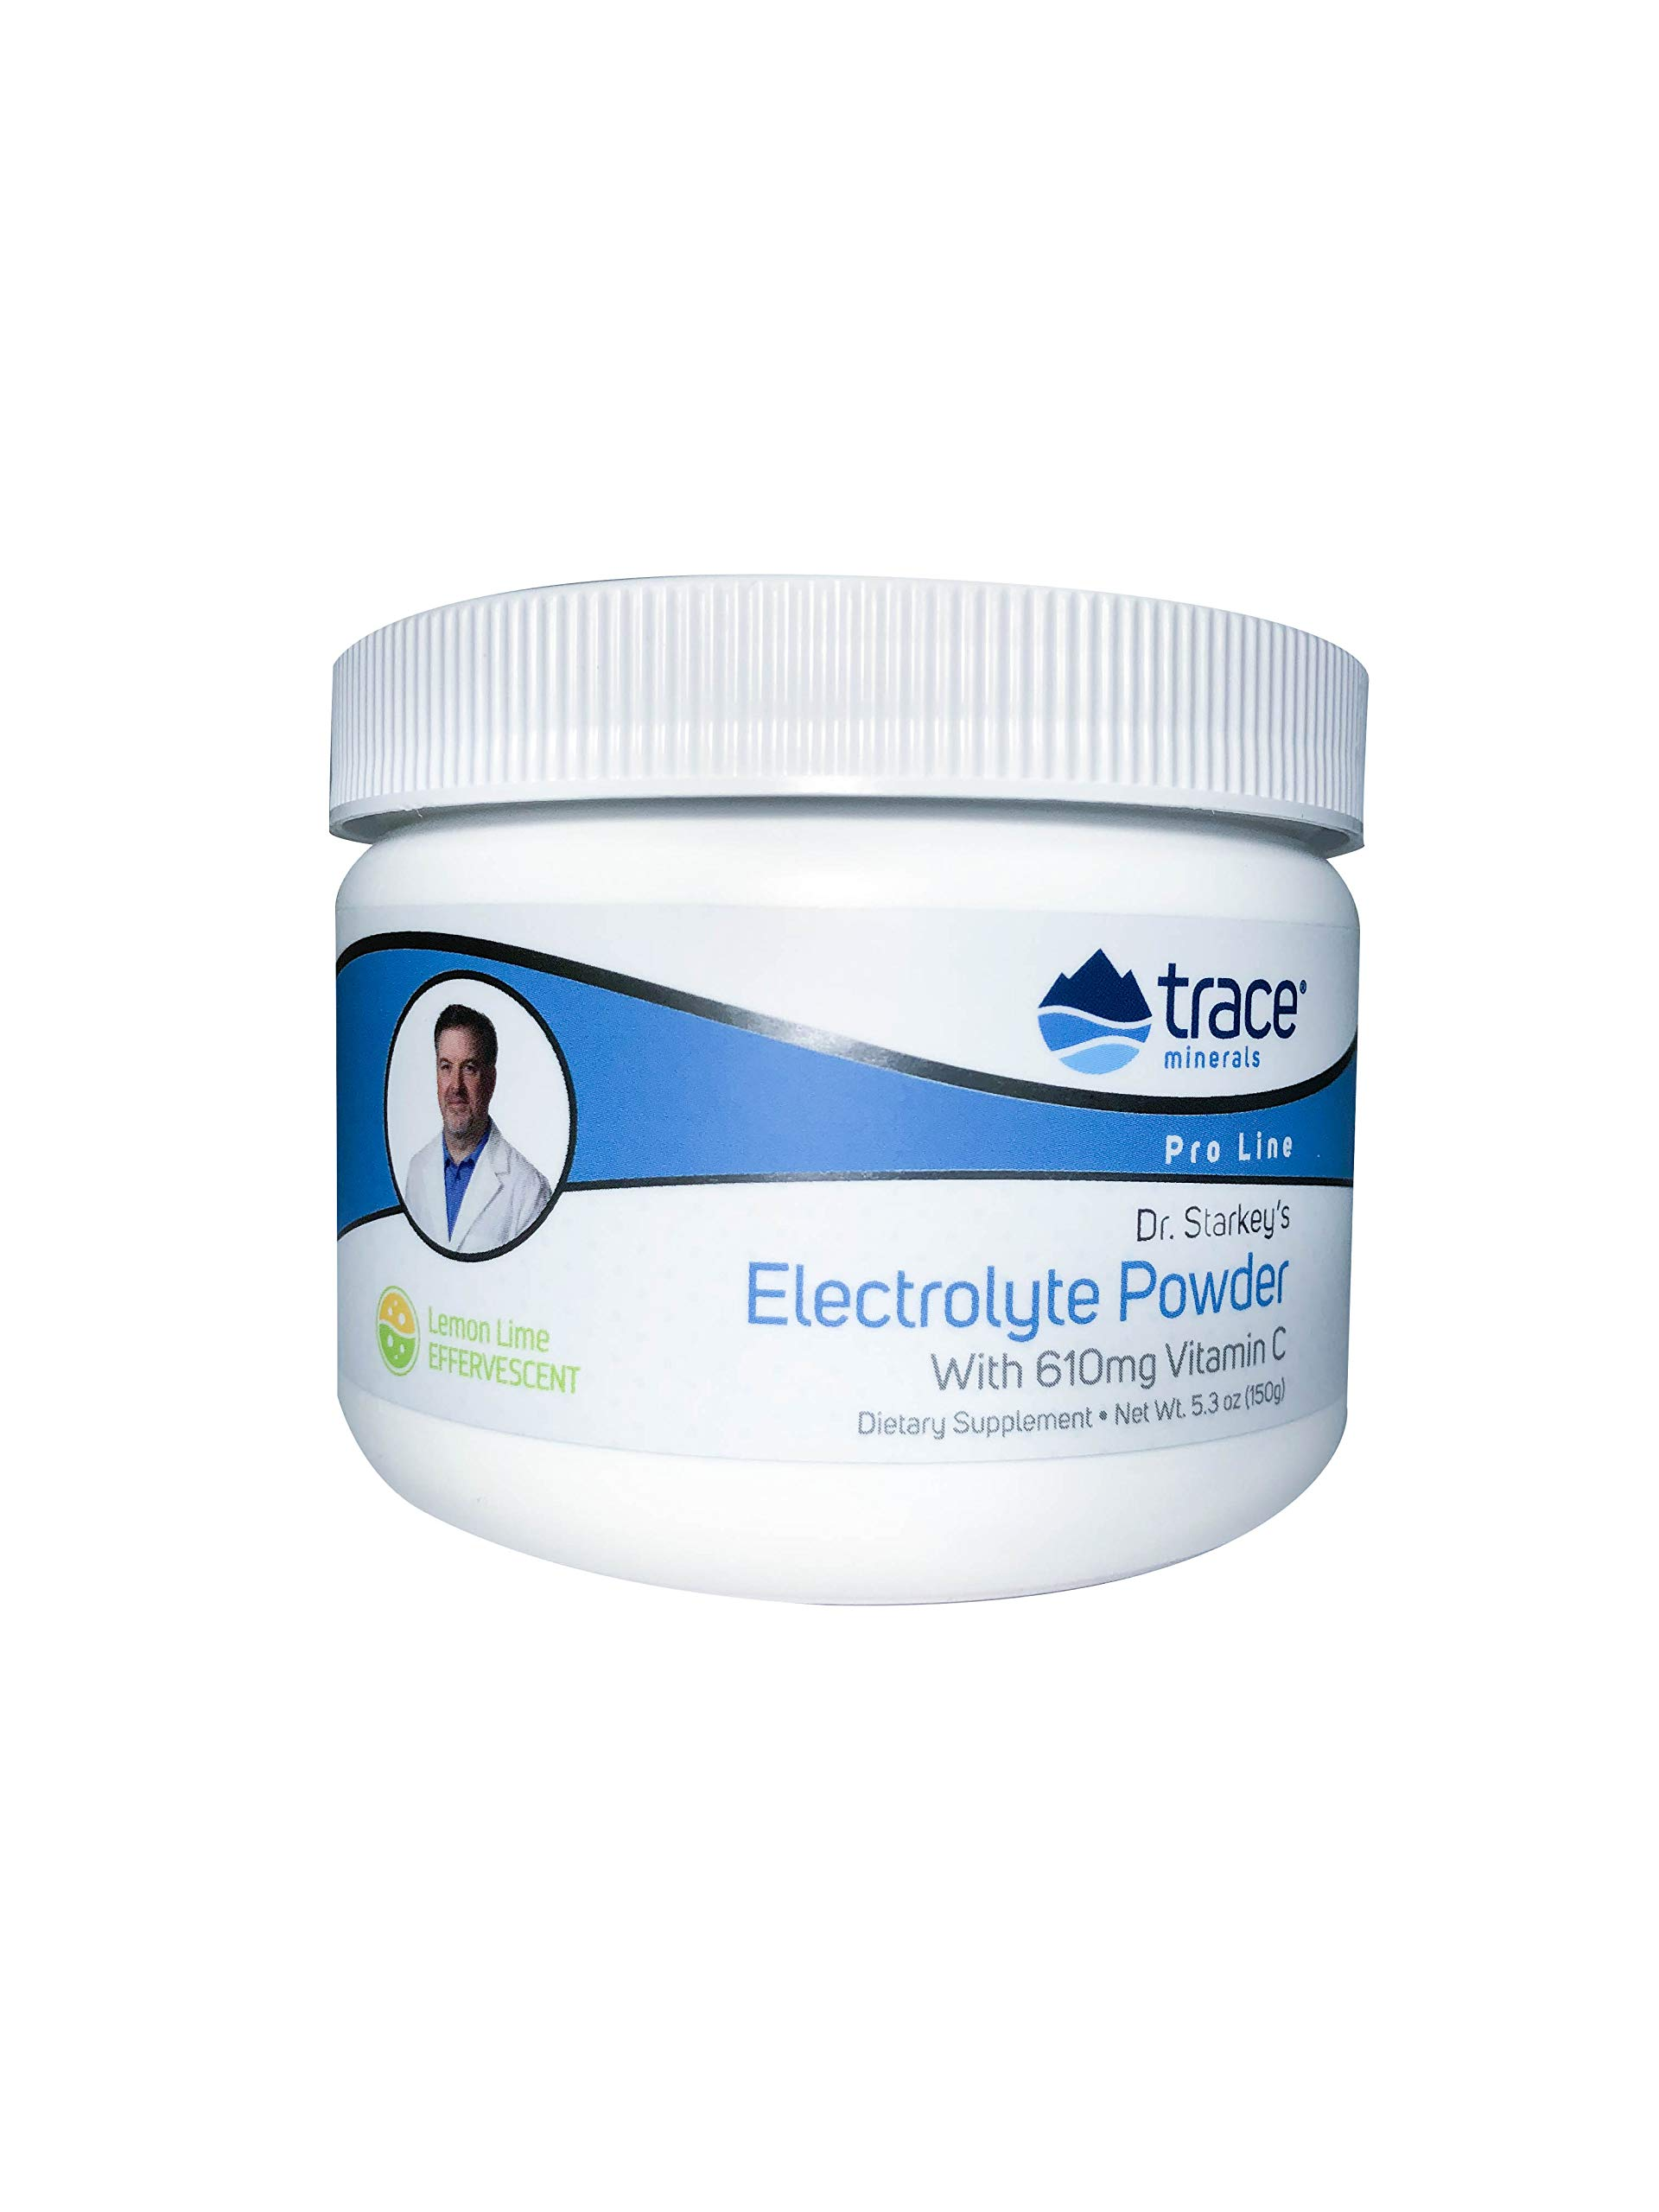 Dr. Starkey's Pro Line Electrolyte Powder with Vitamin C and Concentrace